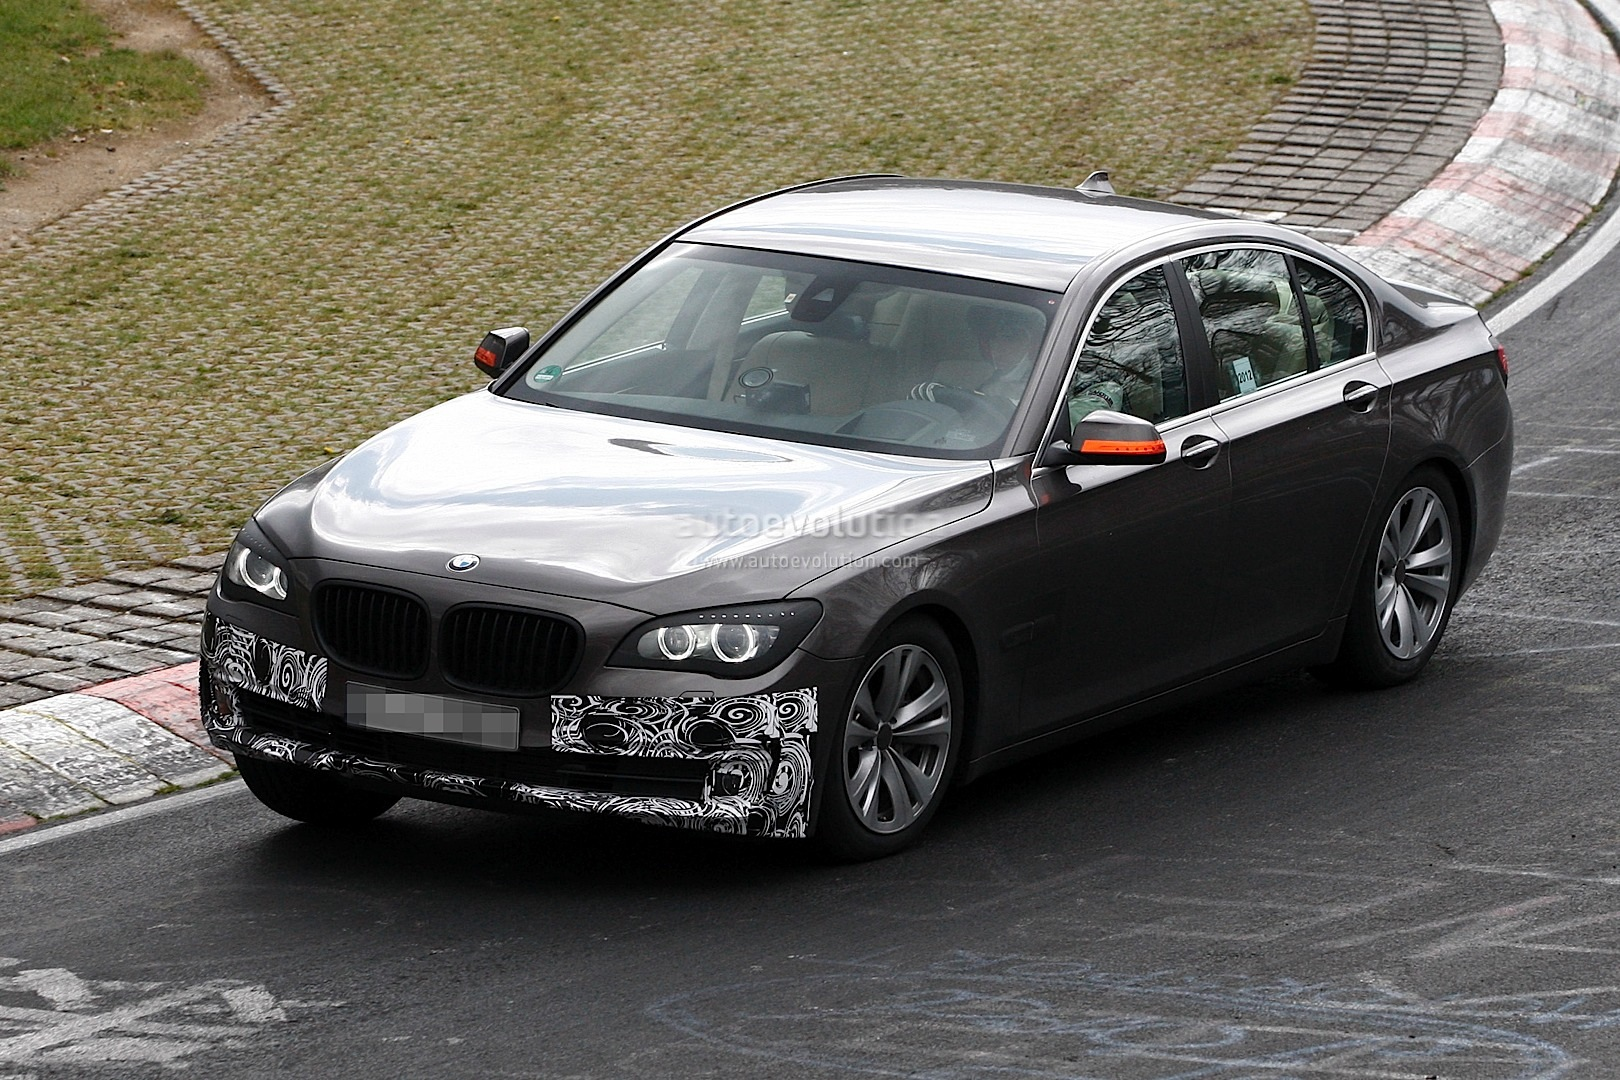 All BMW Models 2013 bmw 7 series 2013 BMW 7-Series Facelift New Features Revealed - autoevolution